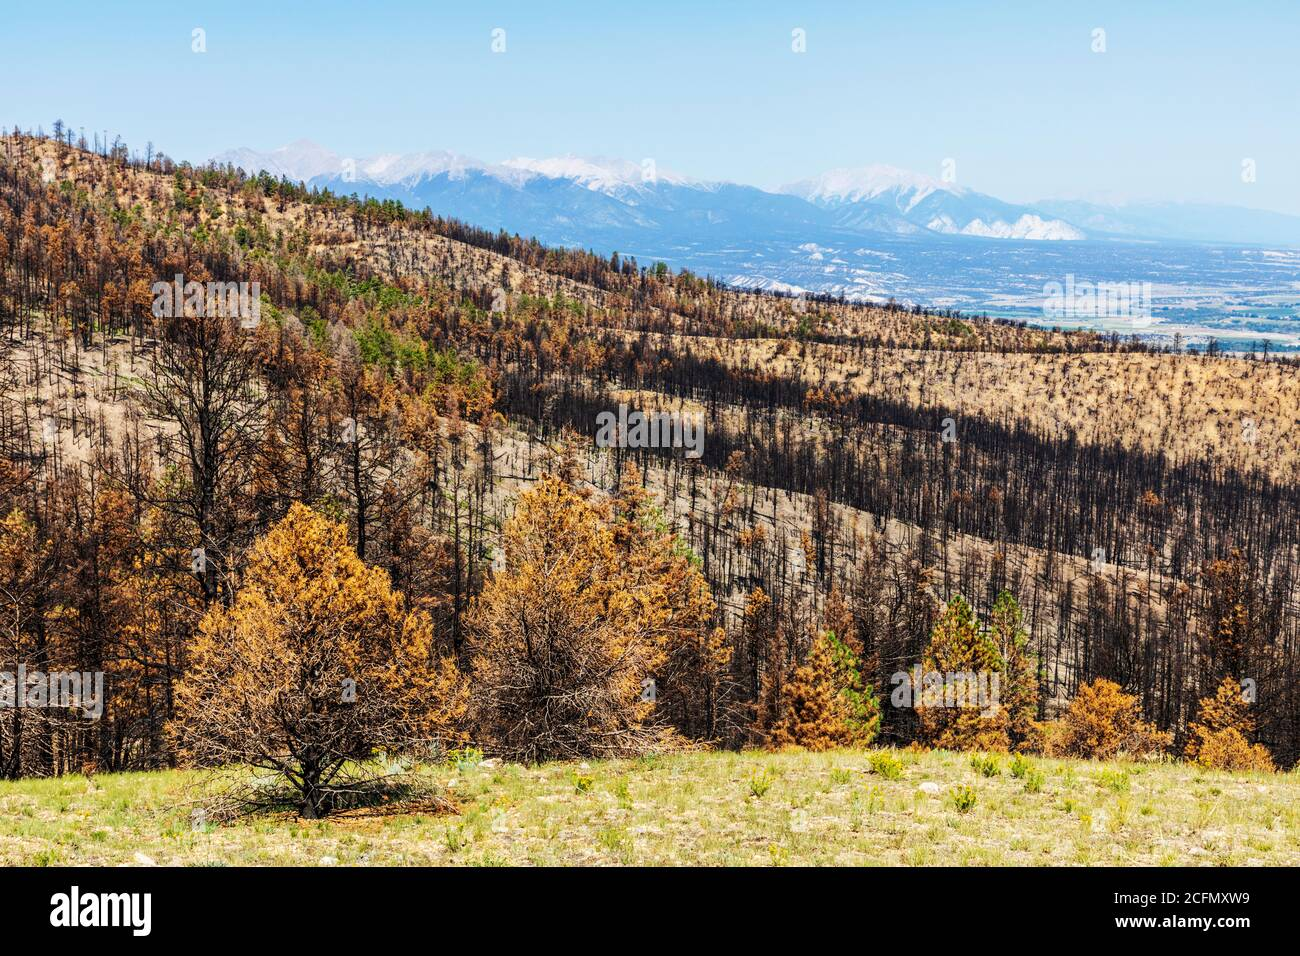 Scarred & damaged forest after the Decker Fire; Rocky Mountains, Central Colorado, USA Stock Photo